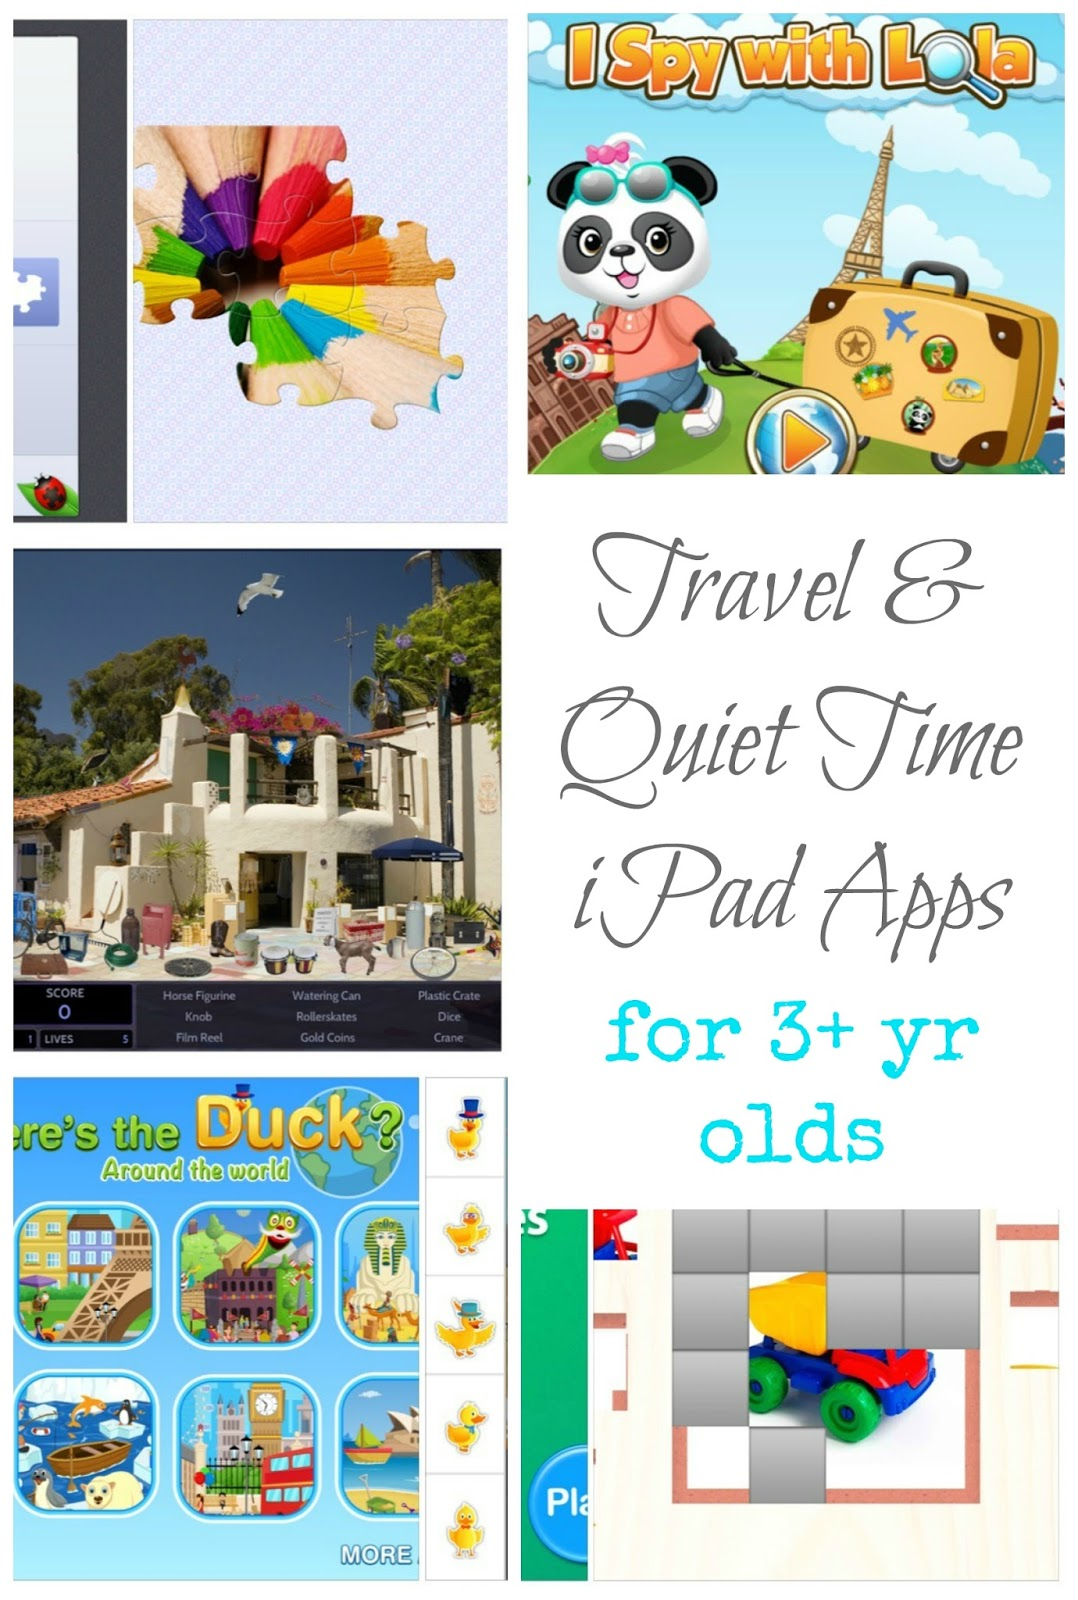 The Practical Mom: Travel & Quiet Time iPad Apps for Ages 3+